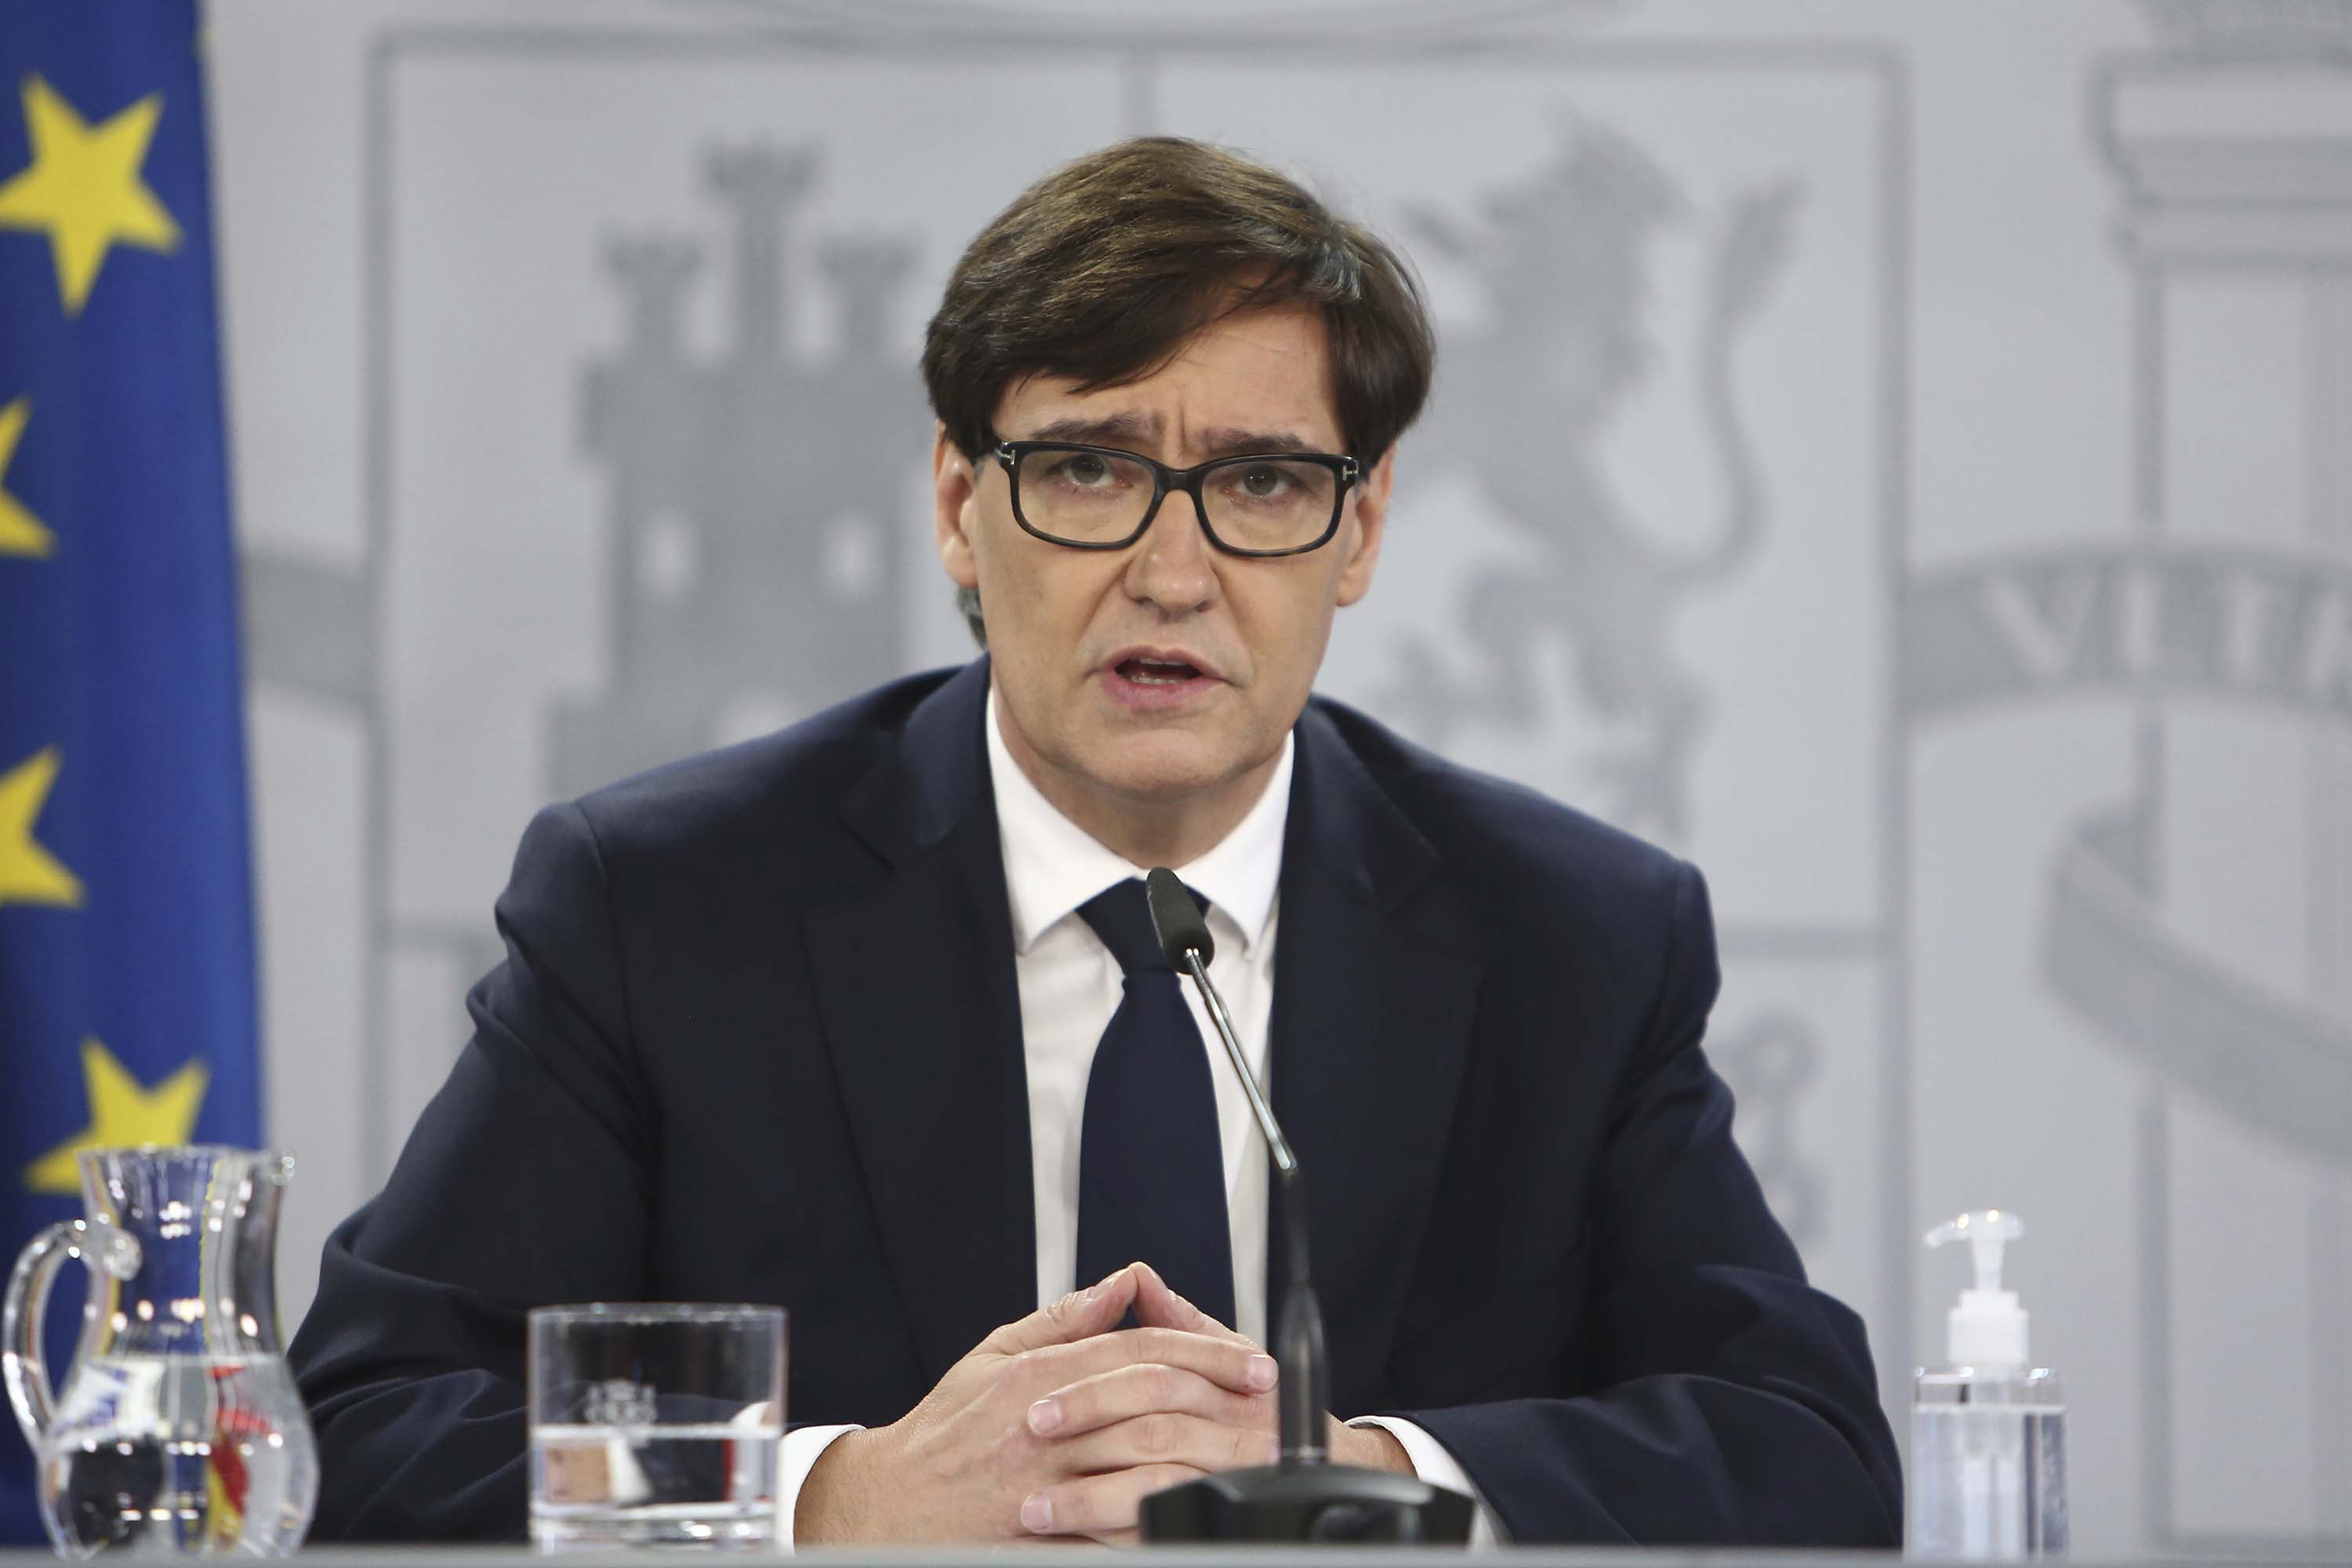 Spain's Minister of Health, Salvador Illa, gives a press conference in Madrid on December 18.